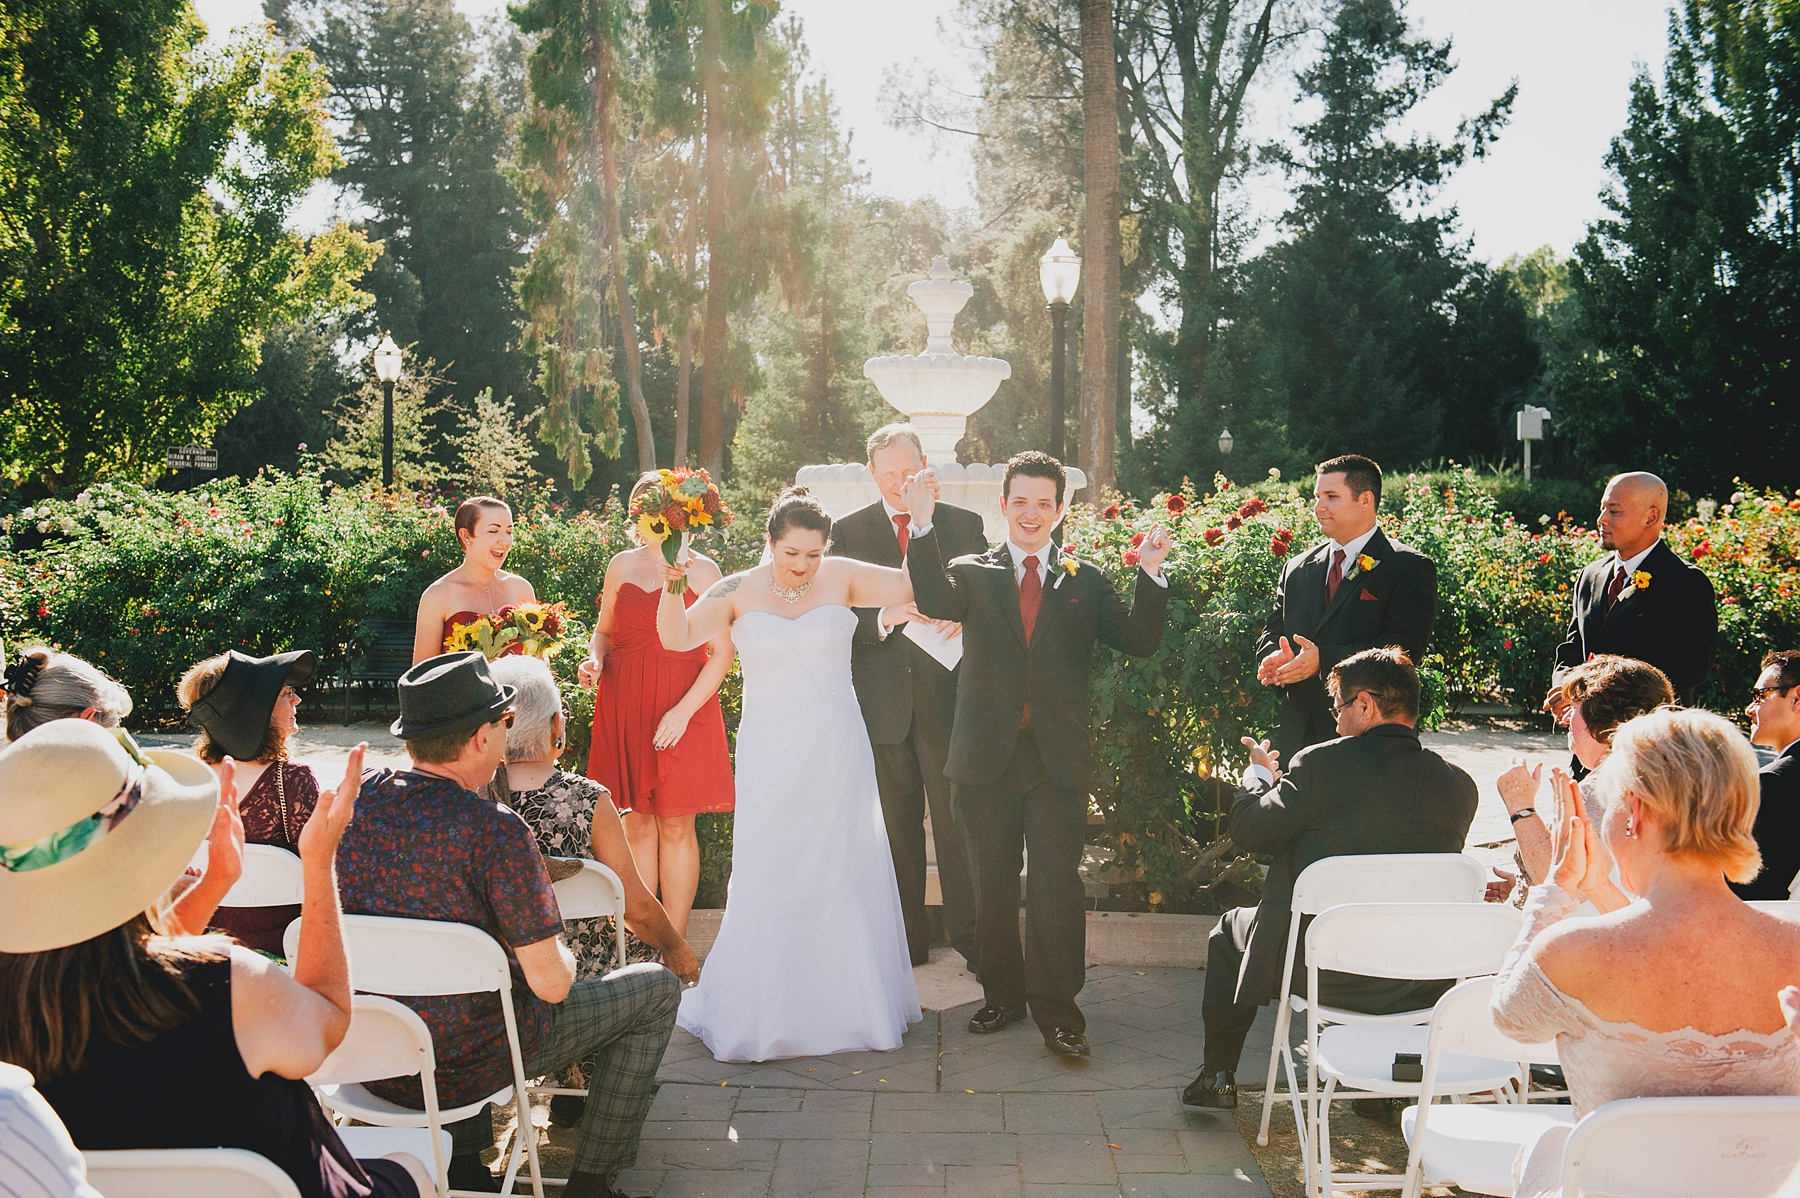 Sacramento Outdoor Wedding Venue - Capitol Park Rose Garden